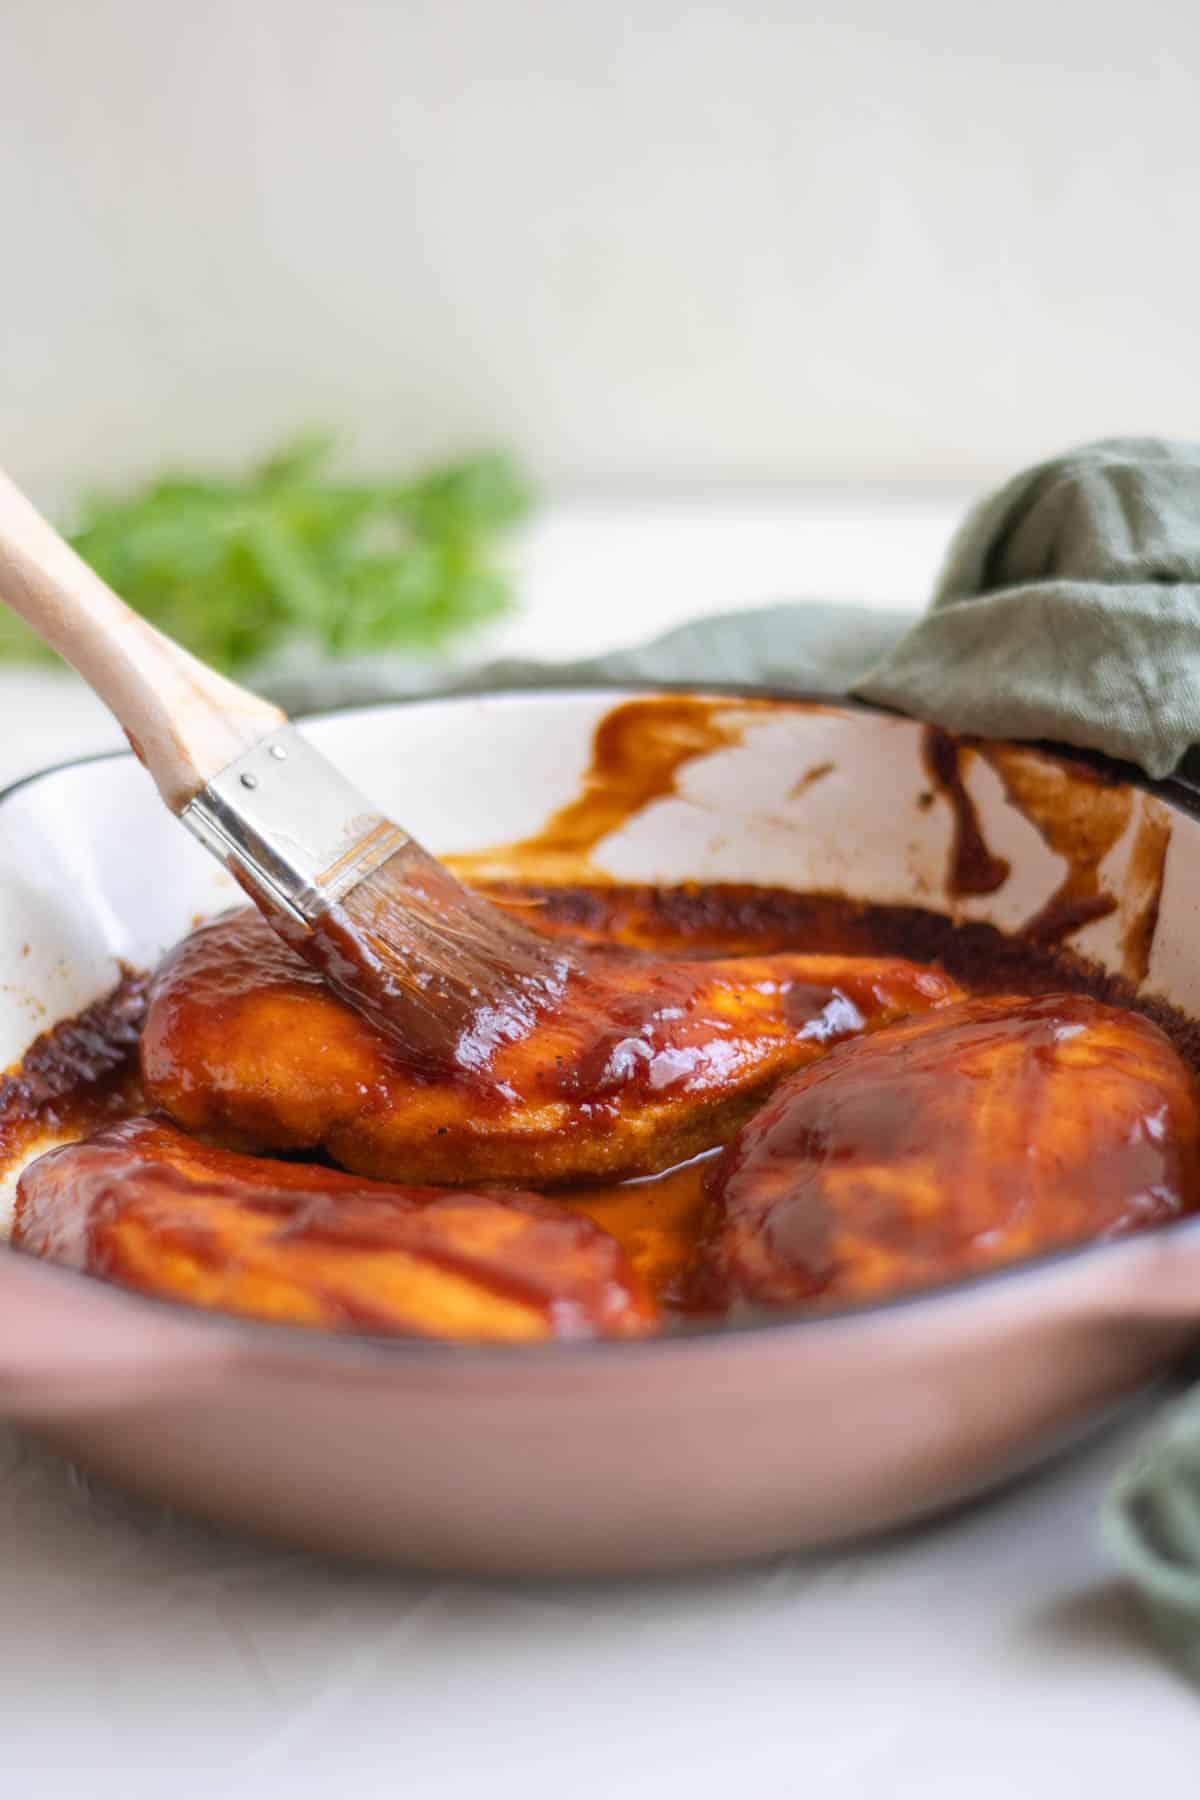 pastry brush brushing barbecue sauce onto chicken breasts in a skillet